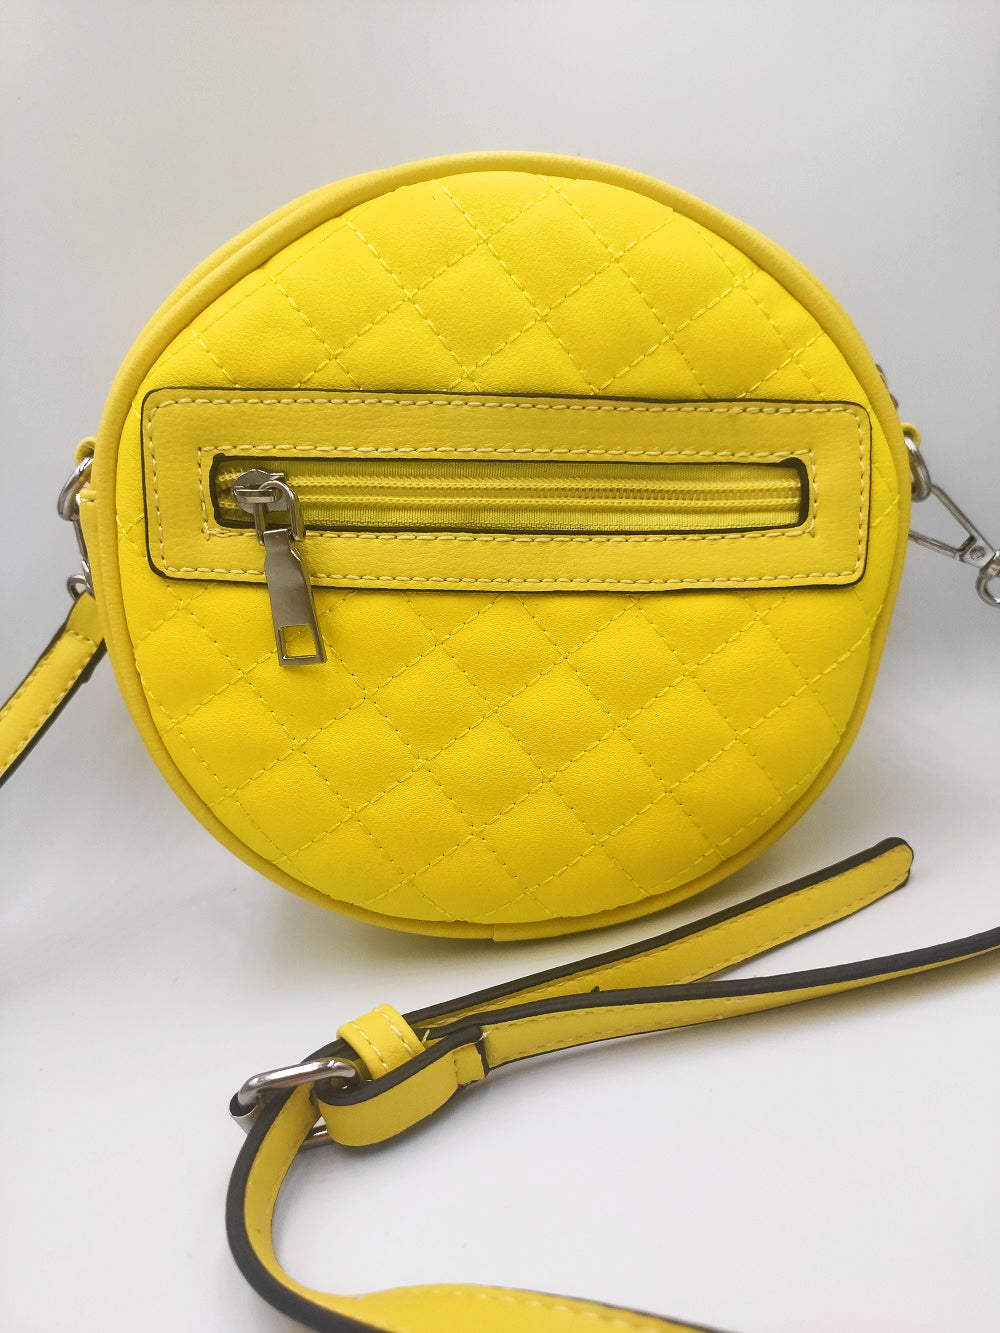 round-yellow-capitone-bag-frontide-grey-background